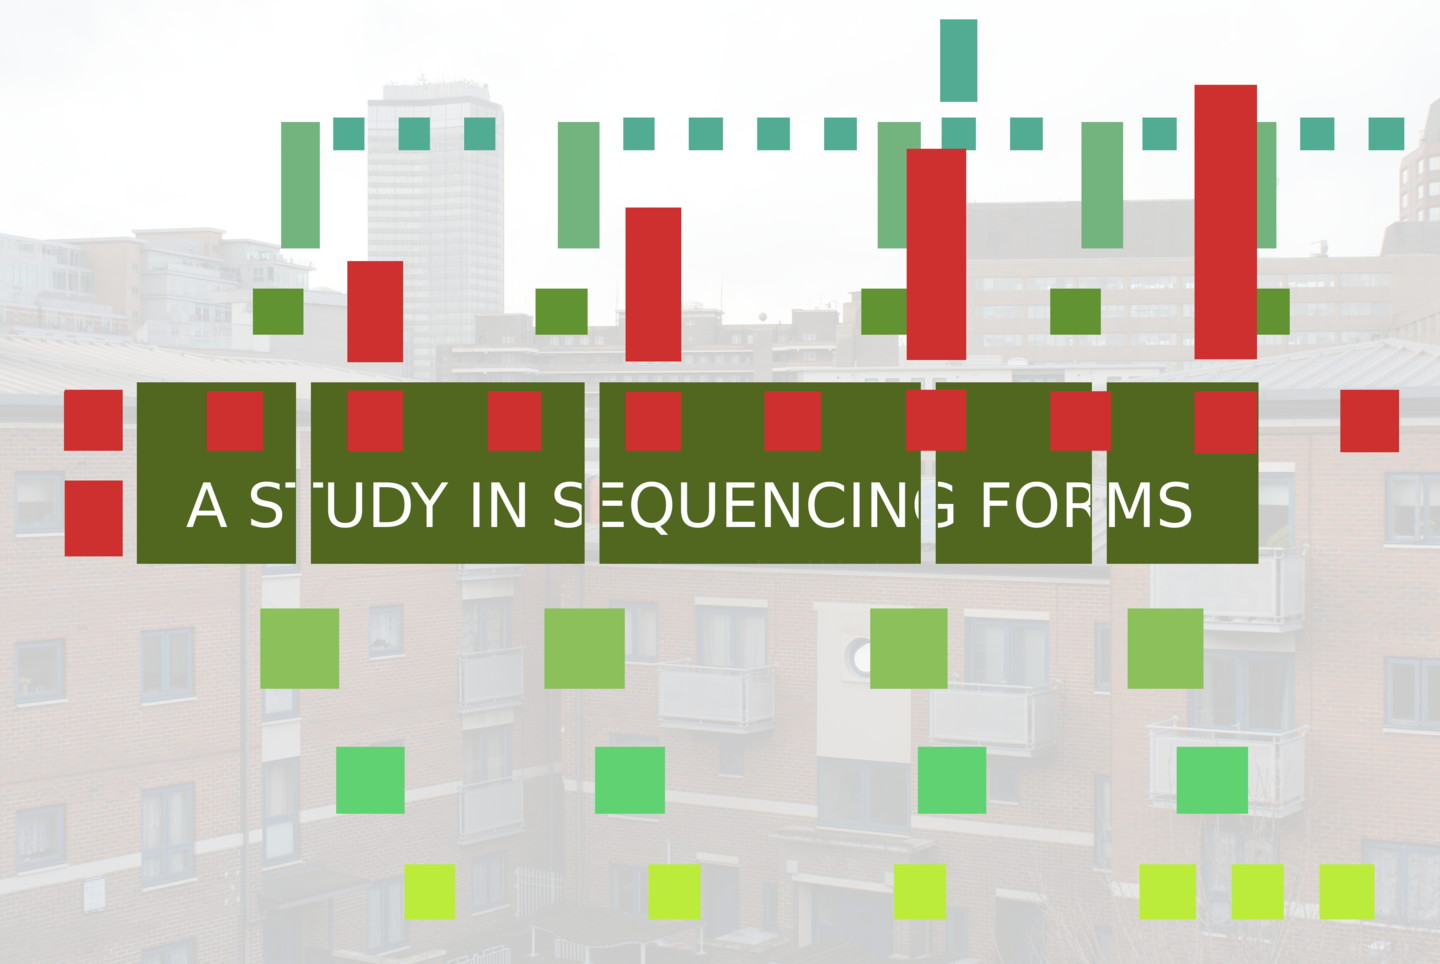 Gerald Shepherd - A Study In Sequencing Forms